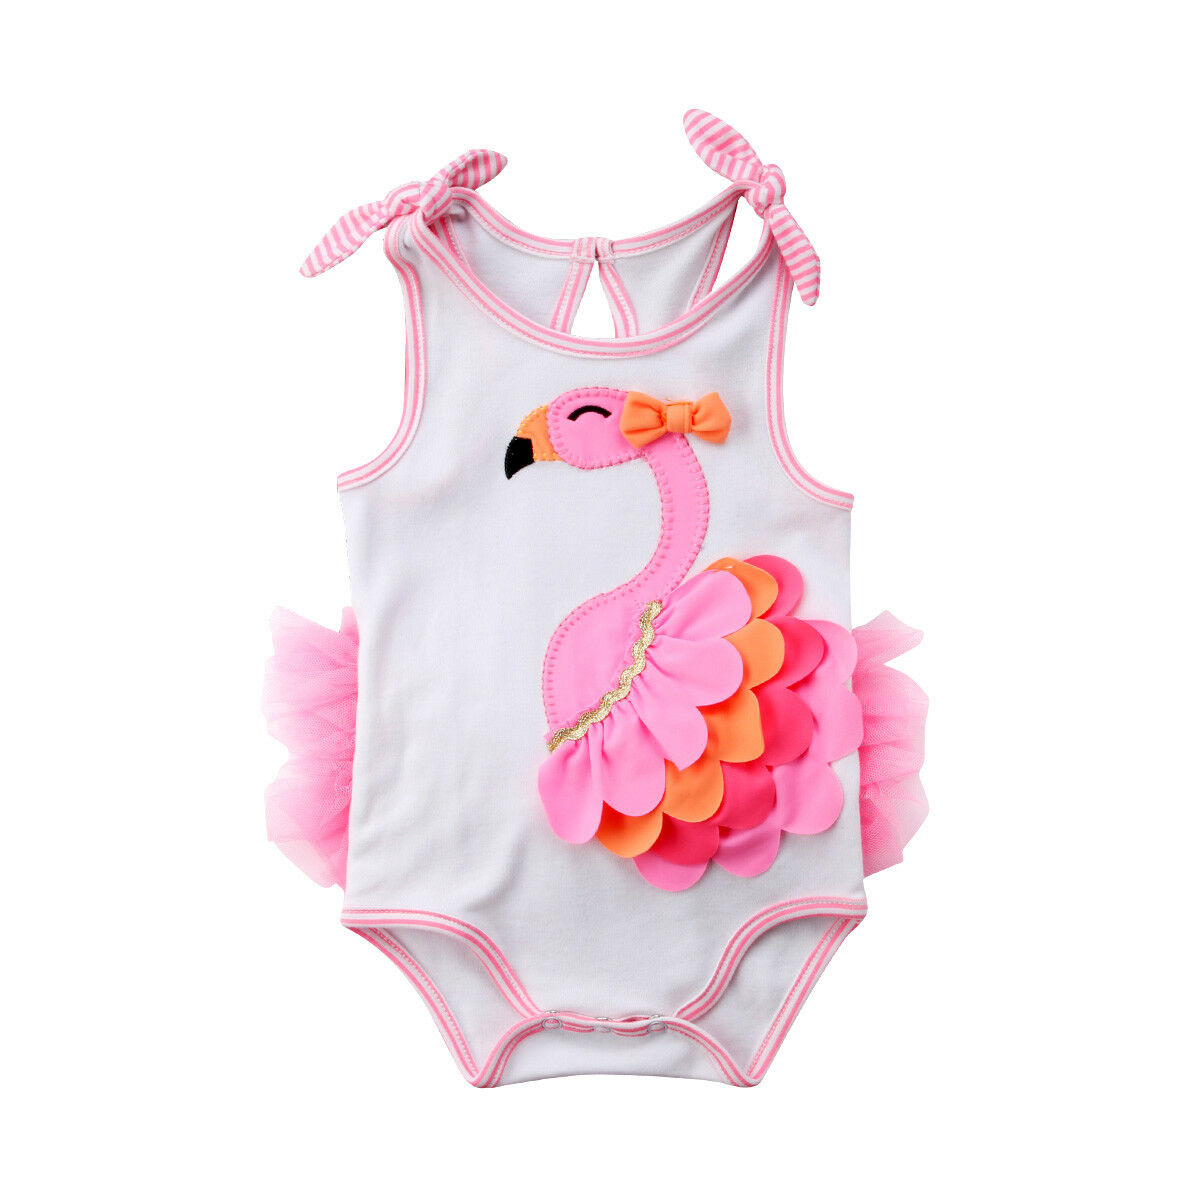 46eadd0048690 Flamingo Newborn Baby Girl Cartoon Swimwear One Pieces Bathing Suit  Beachwear Swimming Costume 0-18M